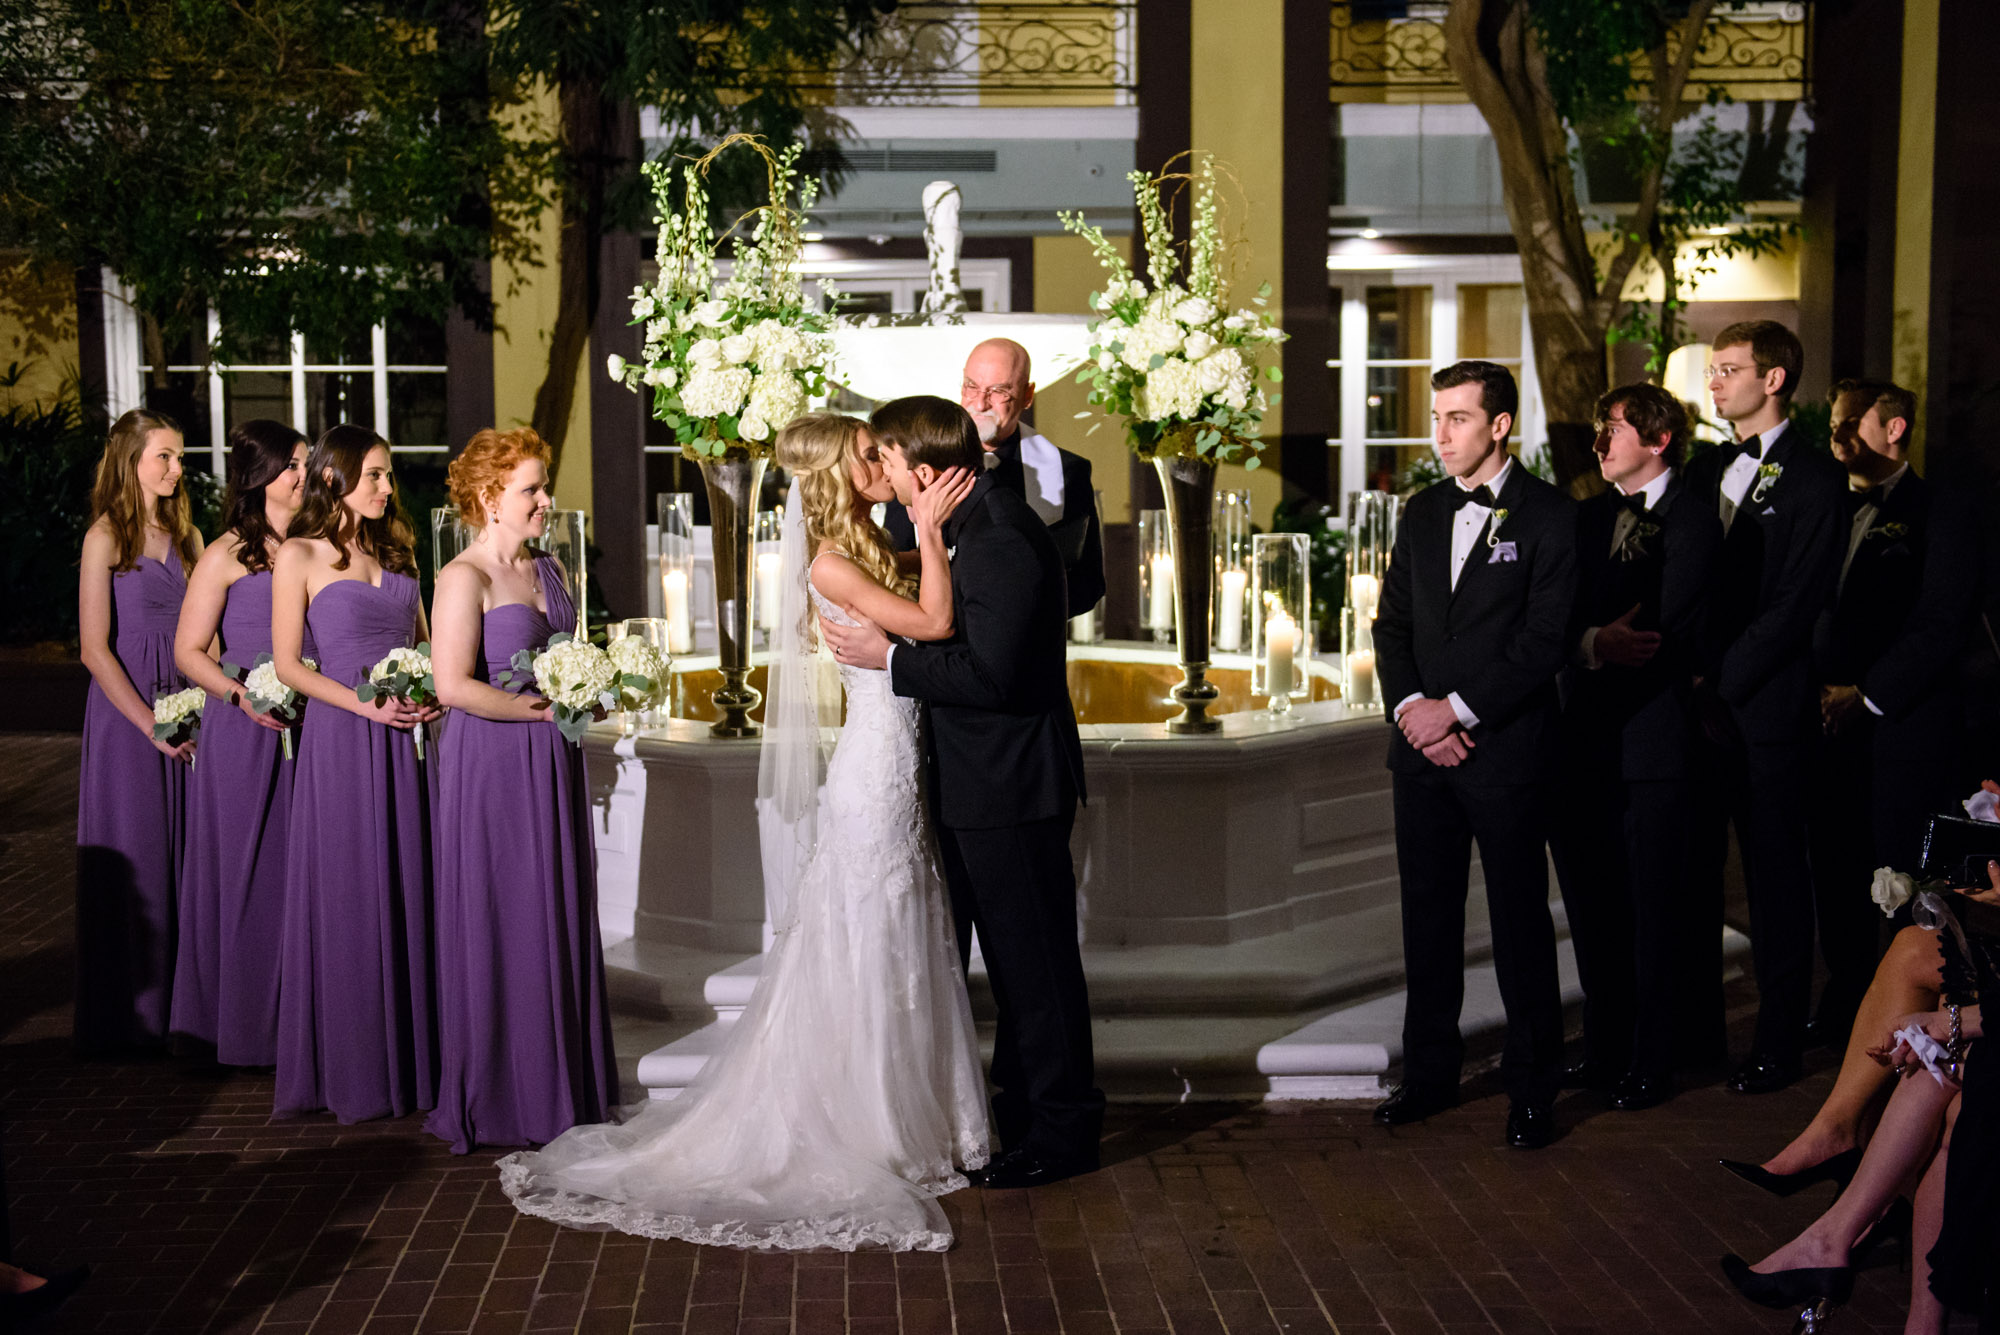 Night time wedding ceremony at New Orleans' Hotel Mazarin